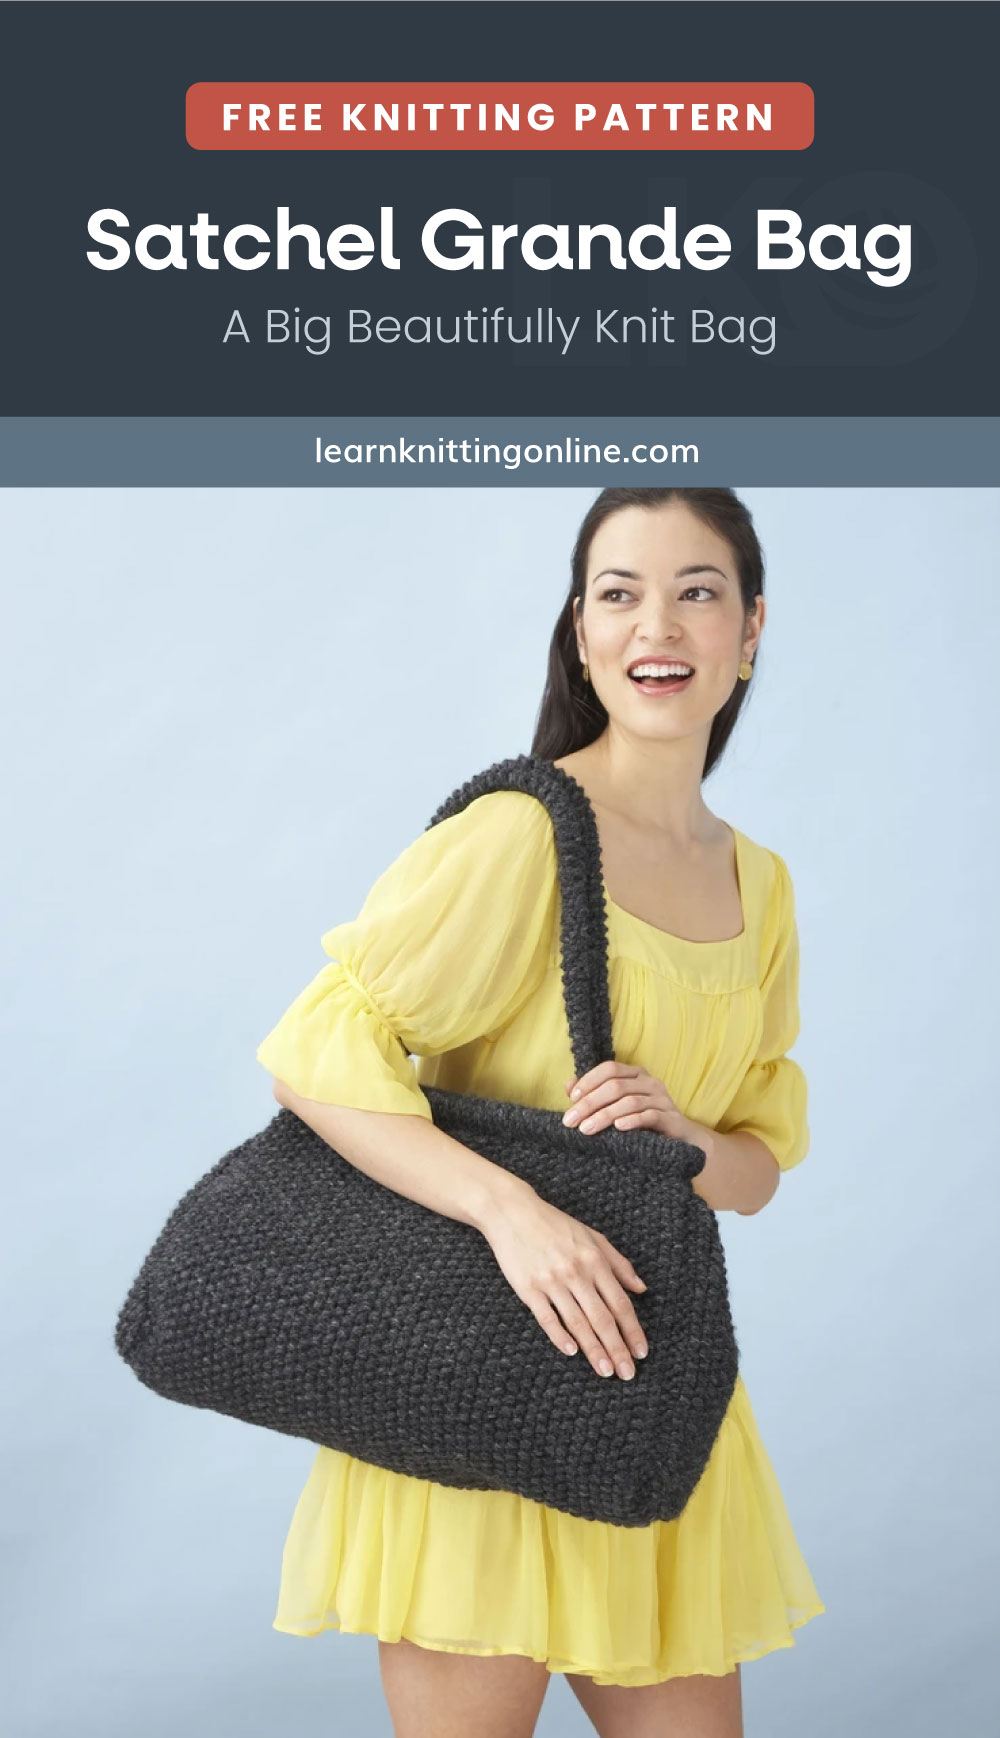 """Text area which says """"Free Knitting Pattern: Satchel Grande Bag - A Big Beautifully Knit Bag, learnknittingonline.com"""" followed by a woman in a yellow dress carrying a big knitted satchel bag"""